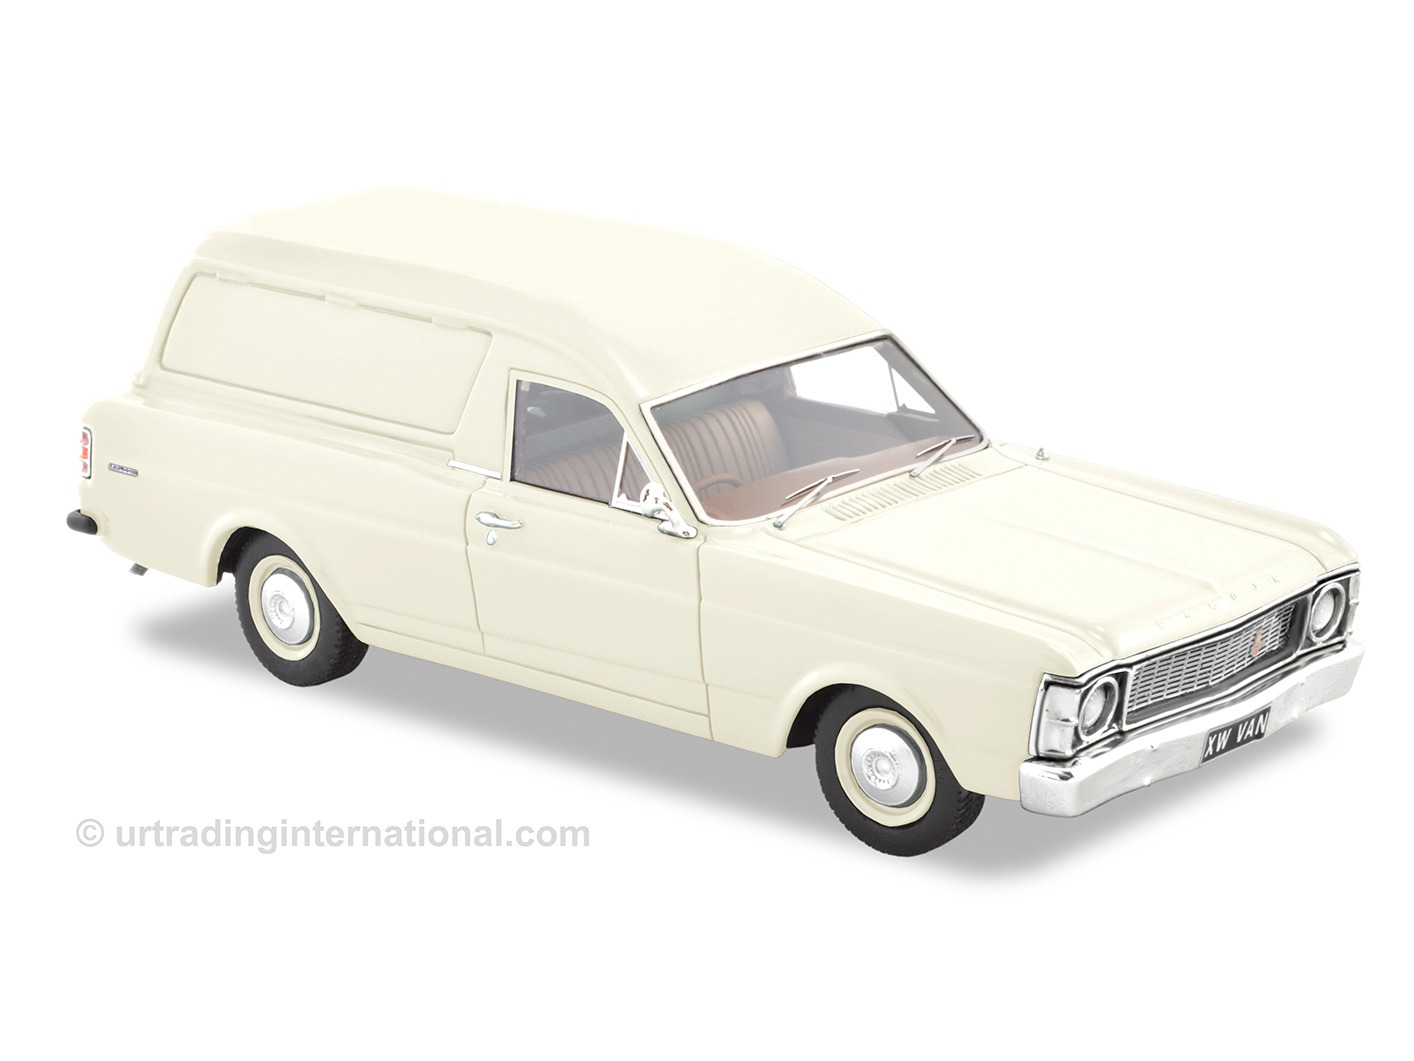 1970 XW Falcon Panel Van – Polar White